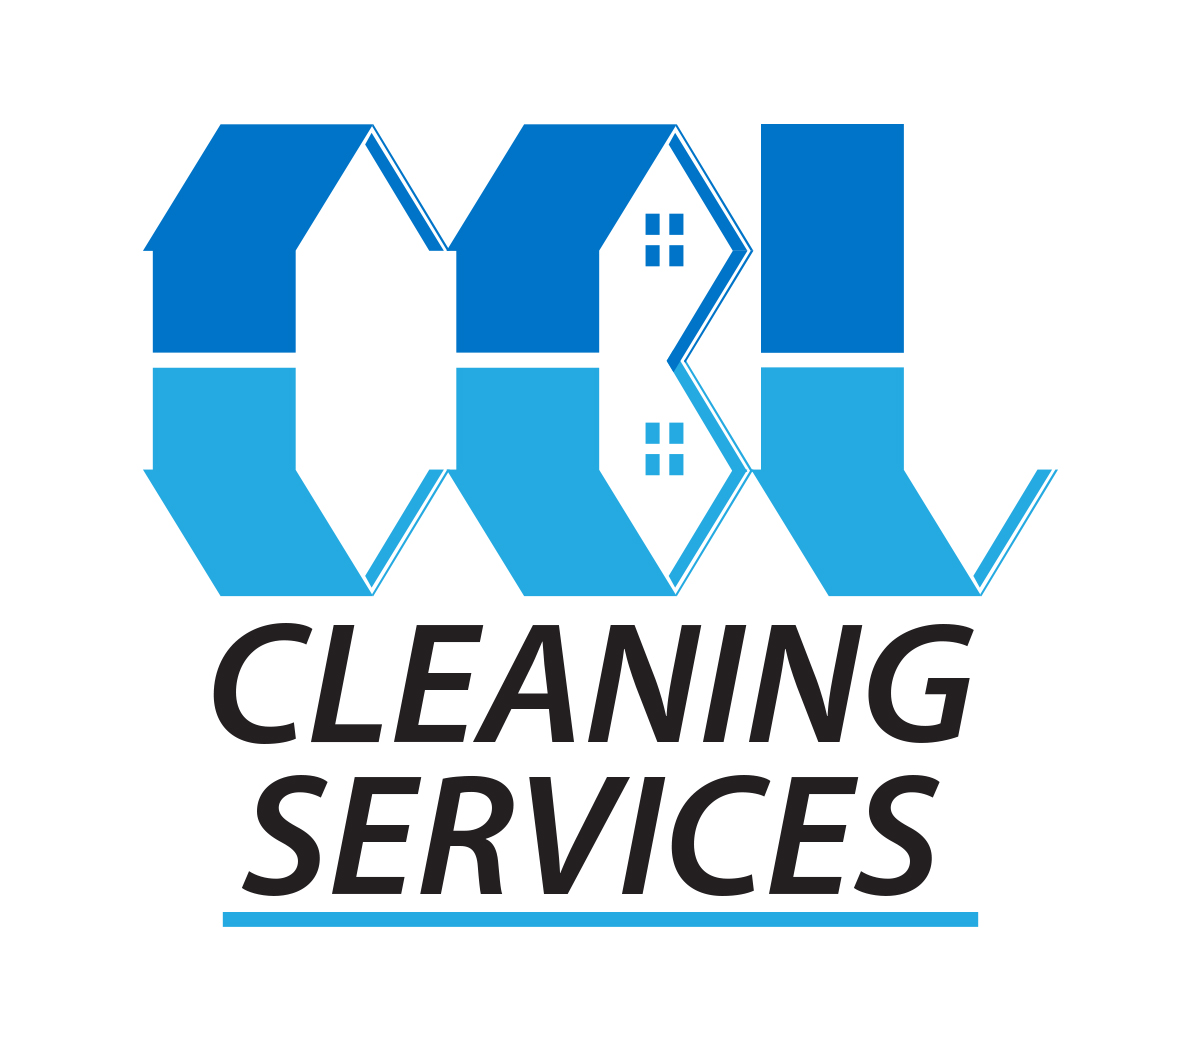 colorful elegant house cleaning logo design for cbl cleaning rh designcrowd com house cleaning logos eps file house cleaning logos images